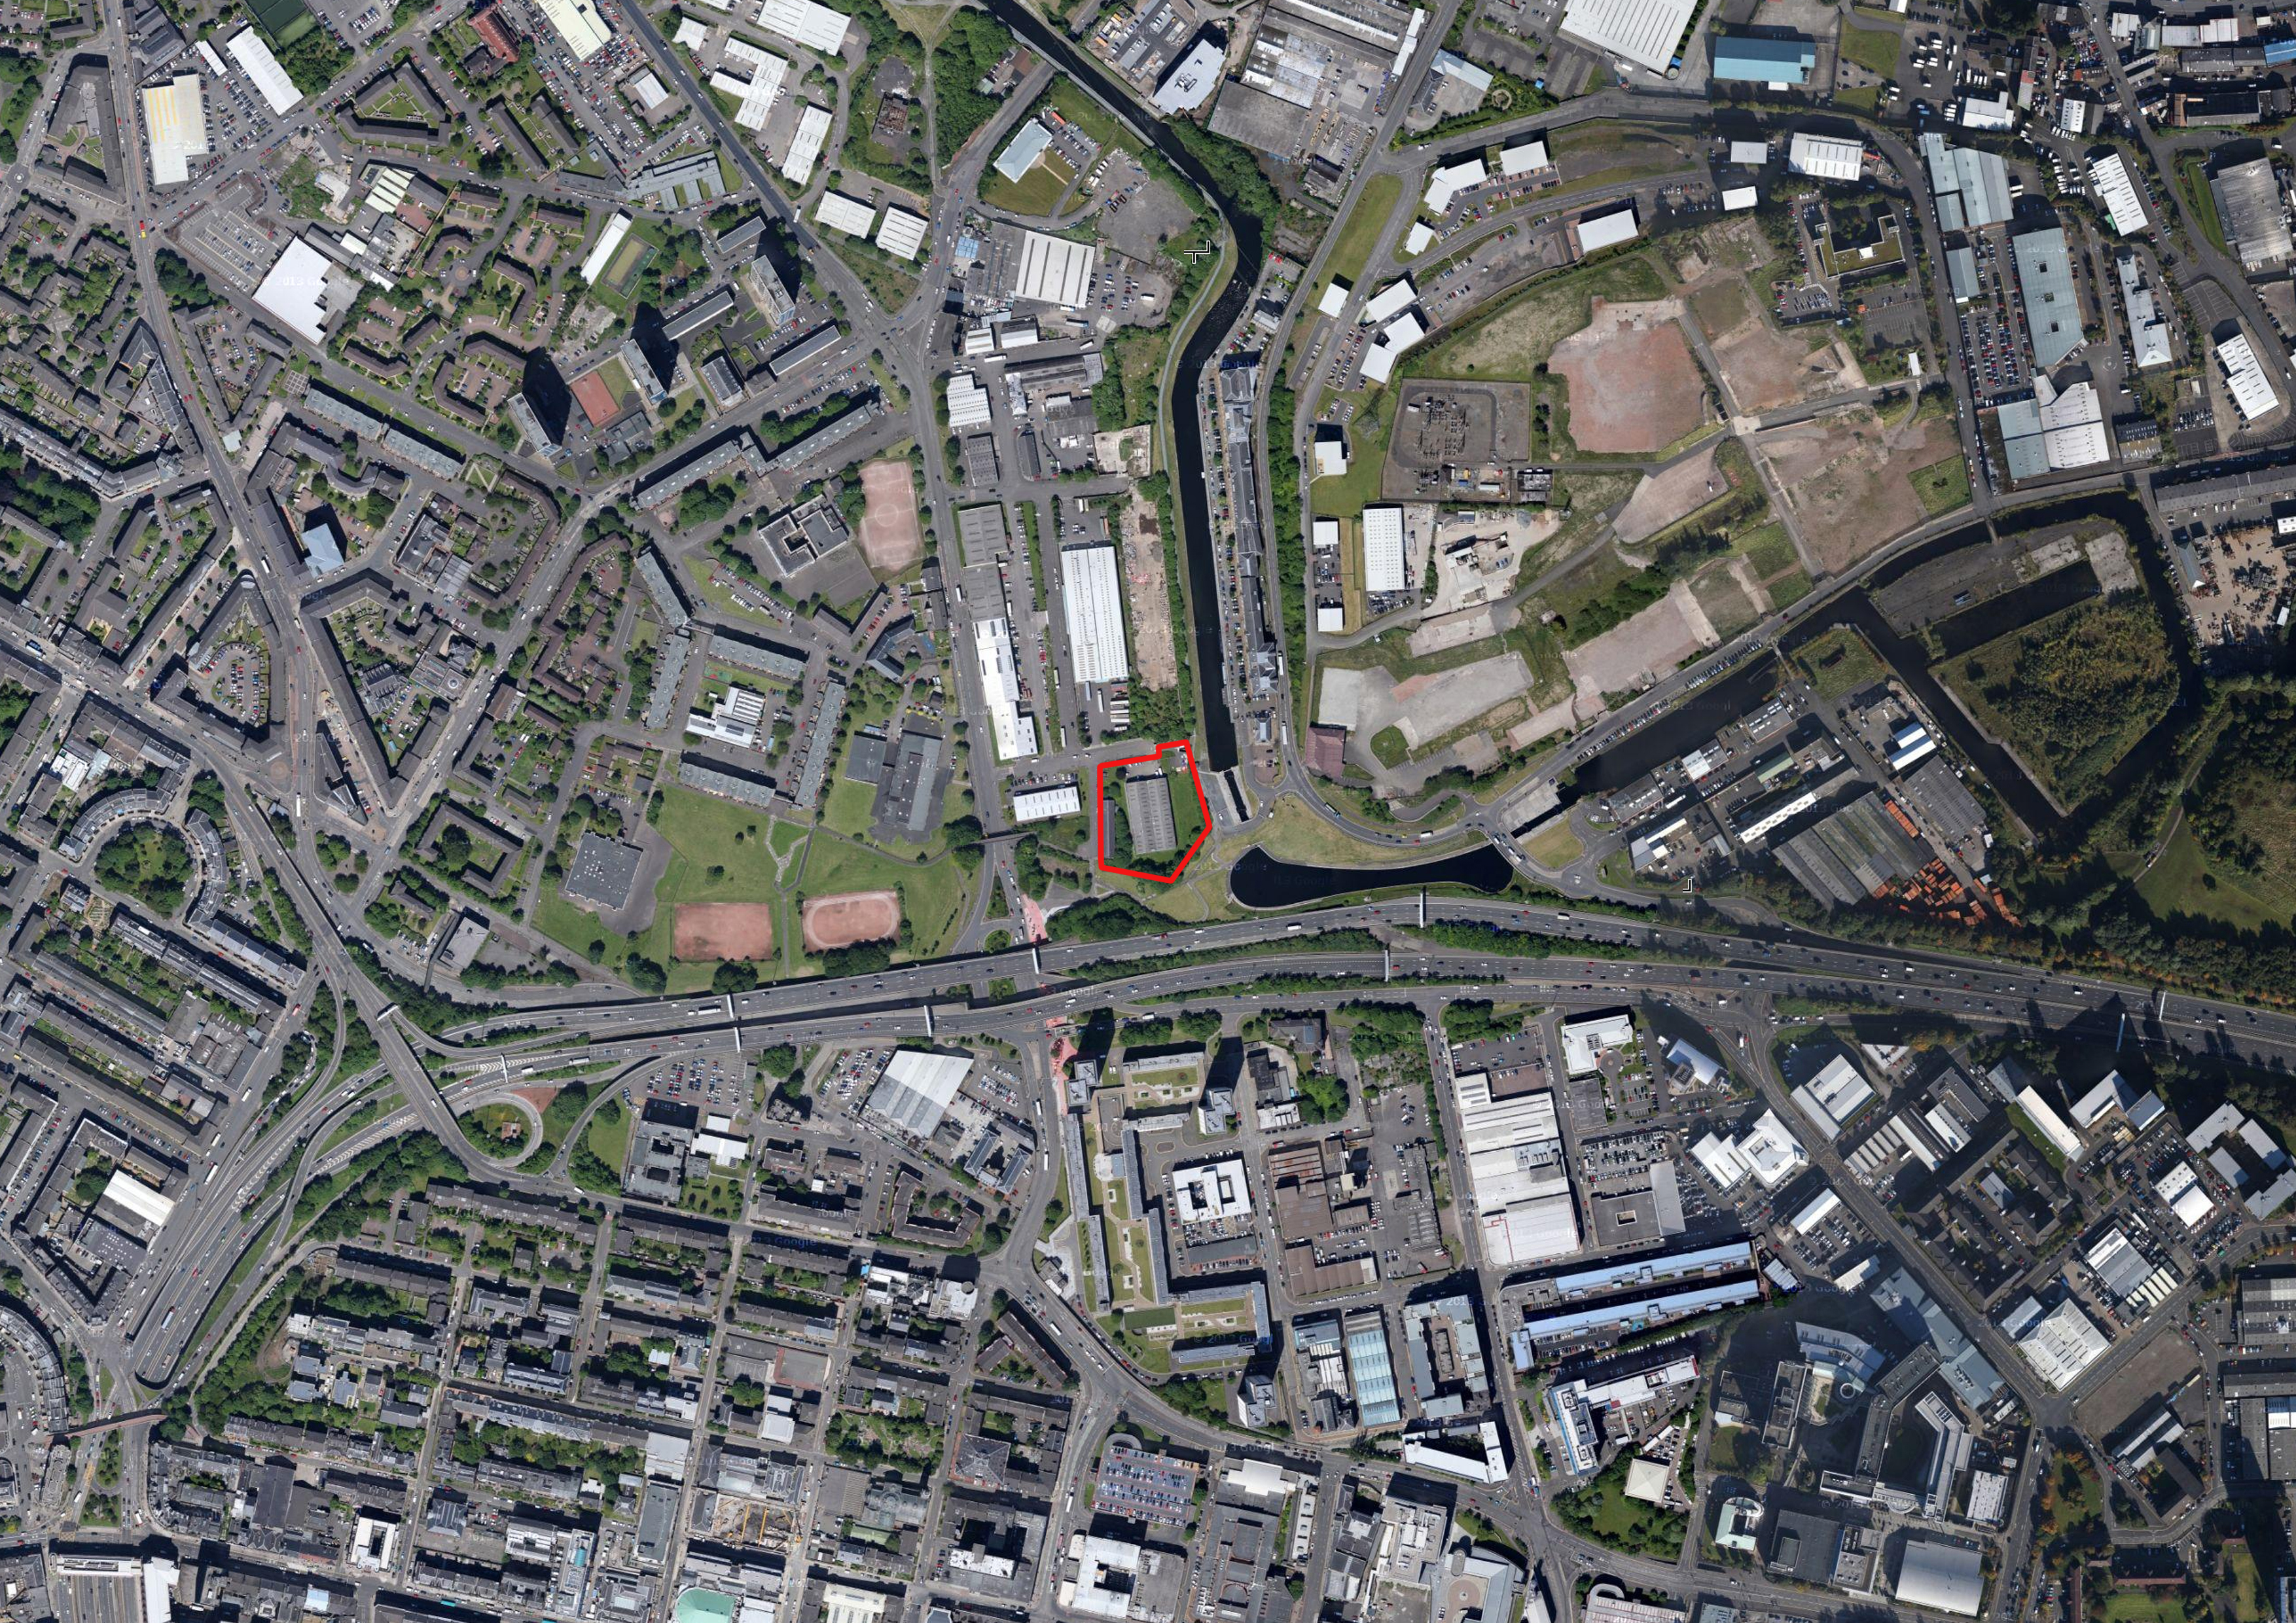 Site Location in context